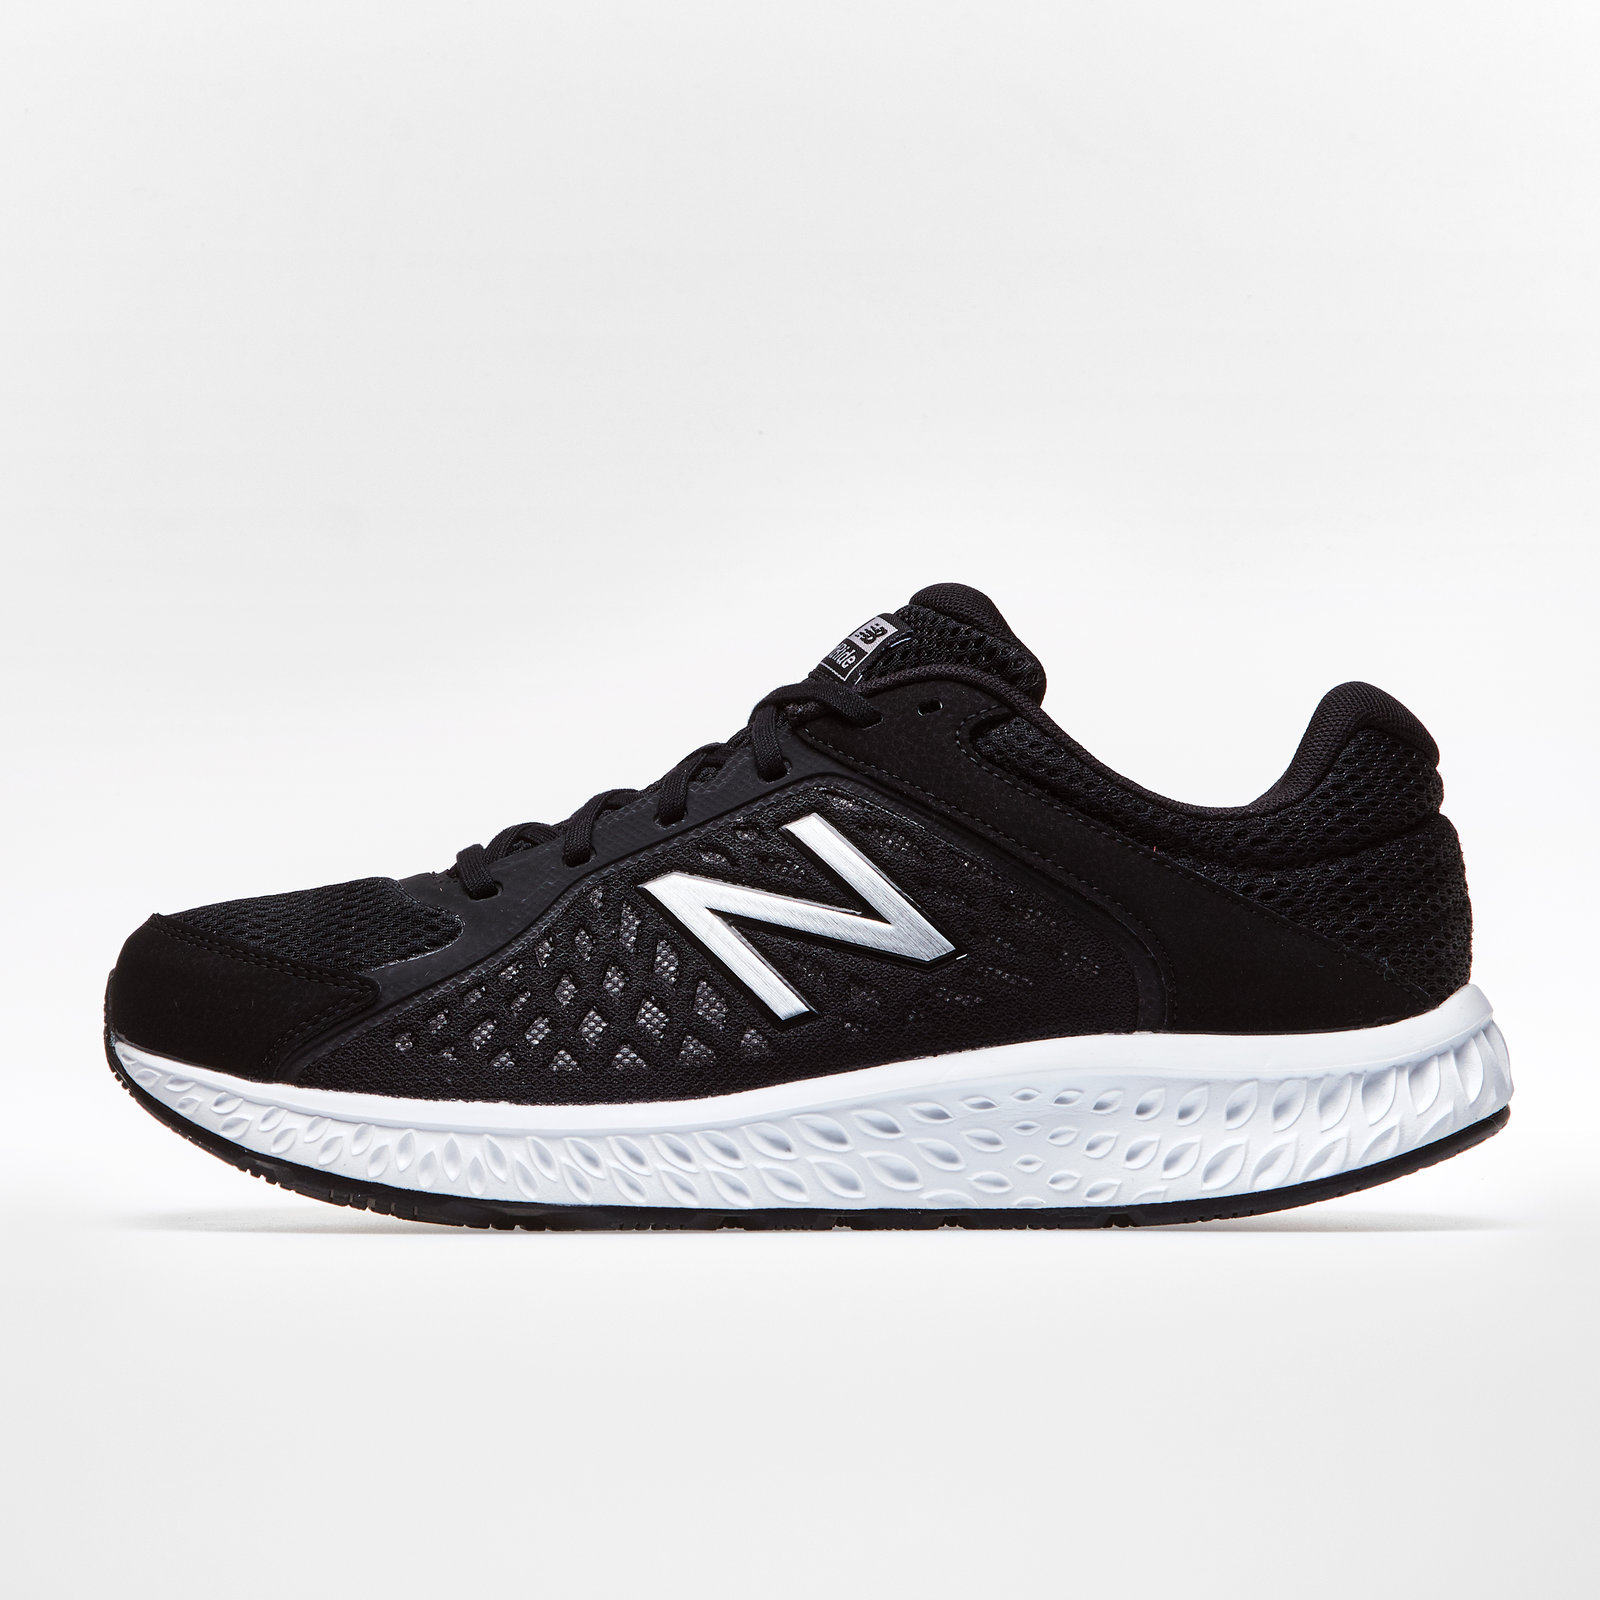 Image of 420 V4 Mens Running Shoes